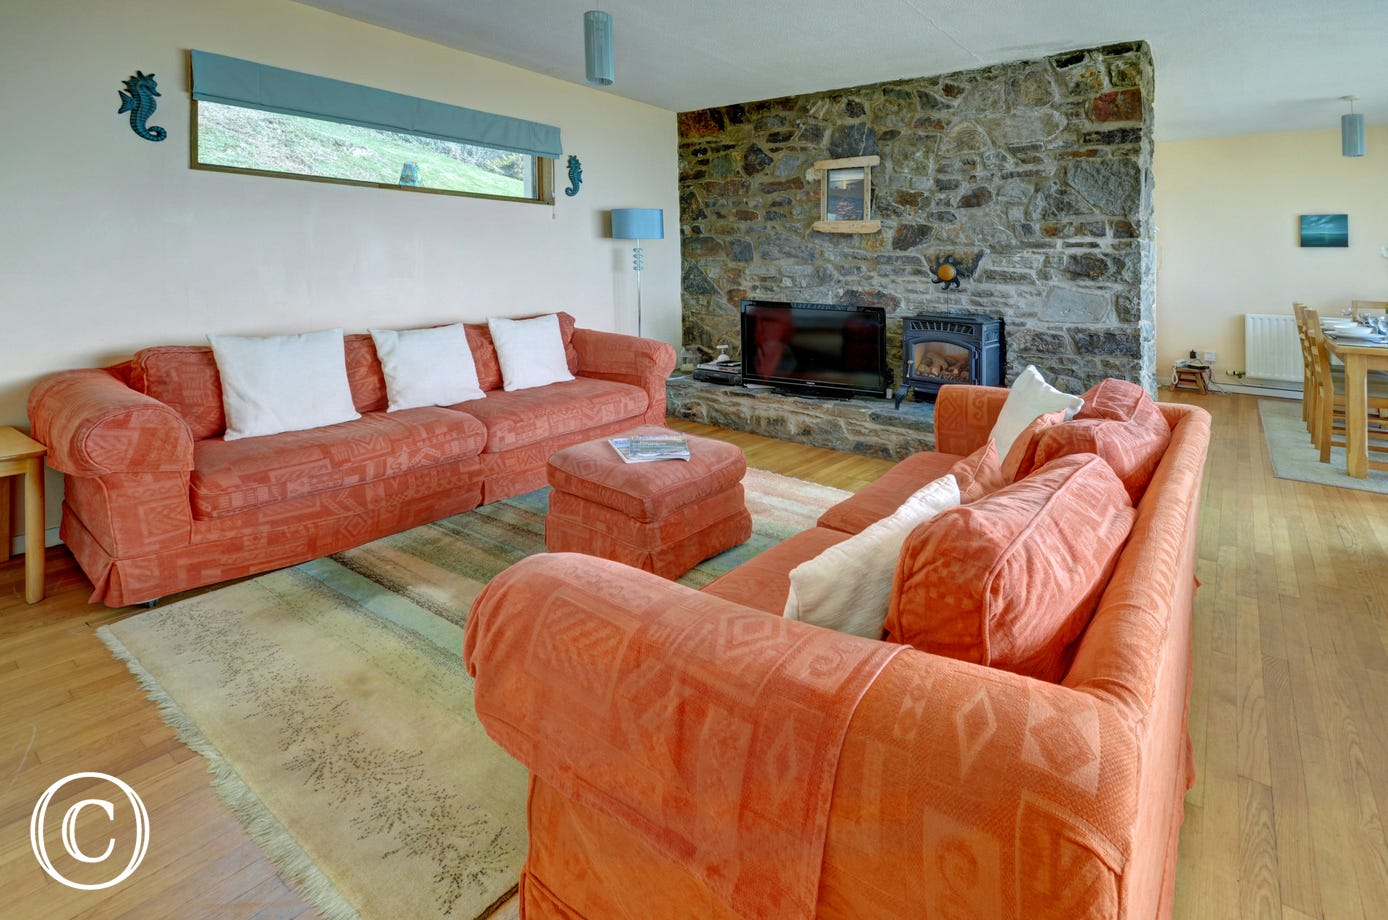 Large comfortable sofas in the relaxing sitting area